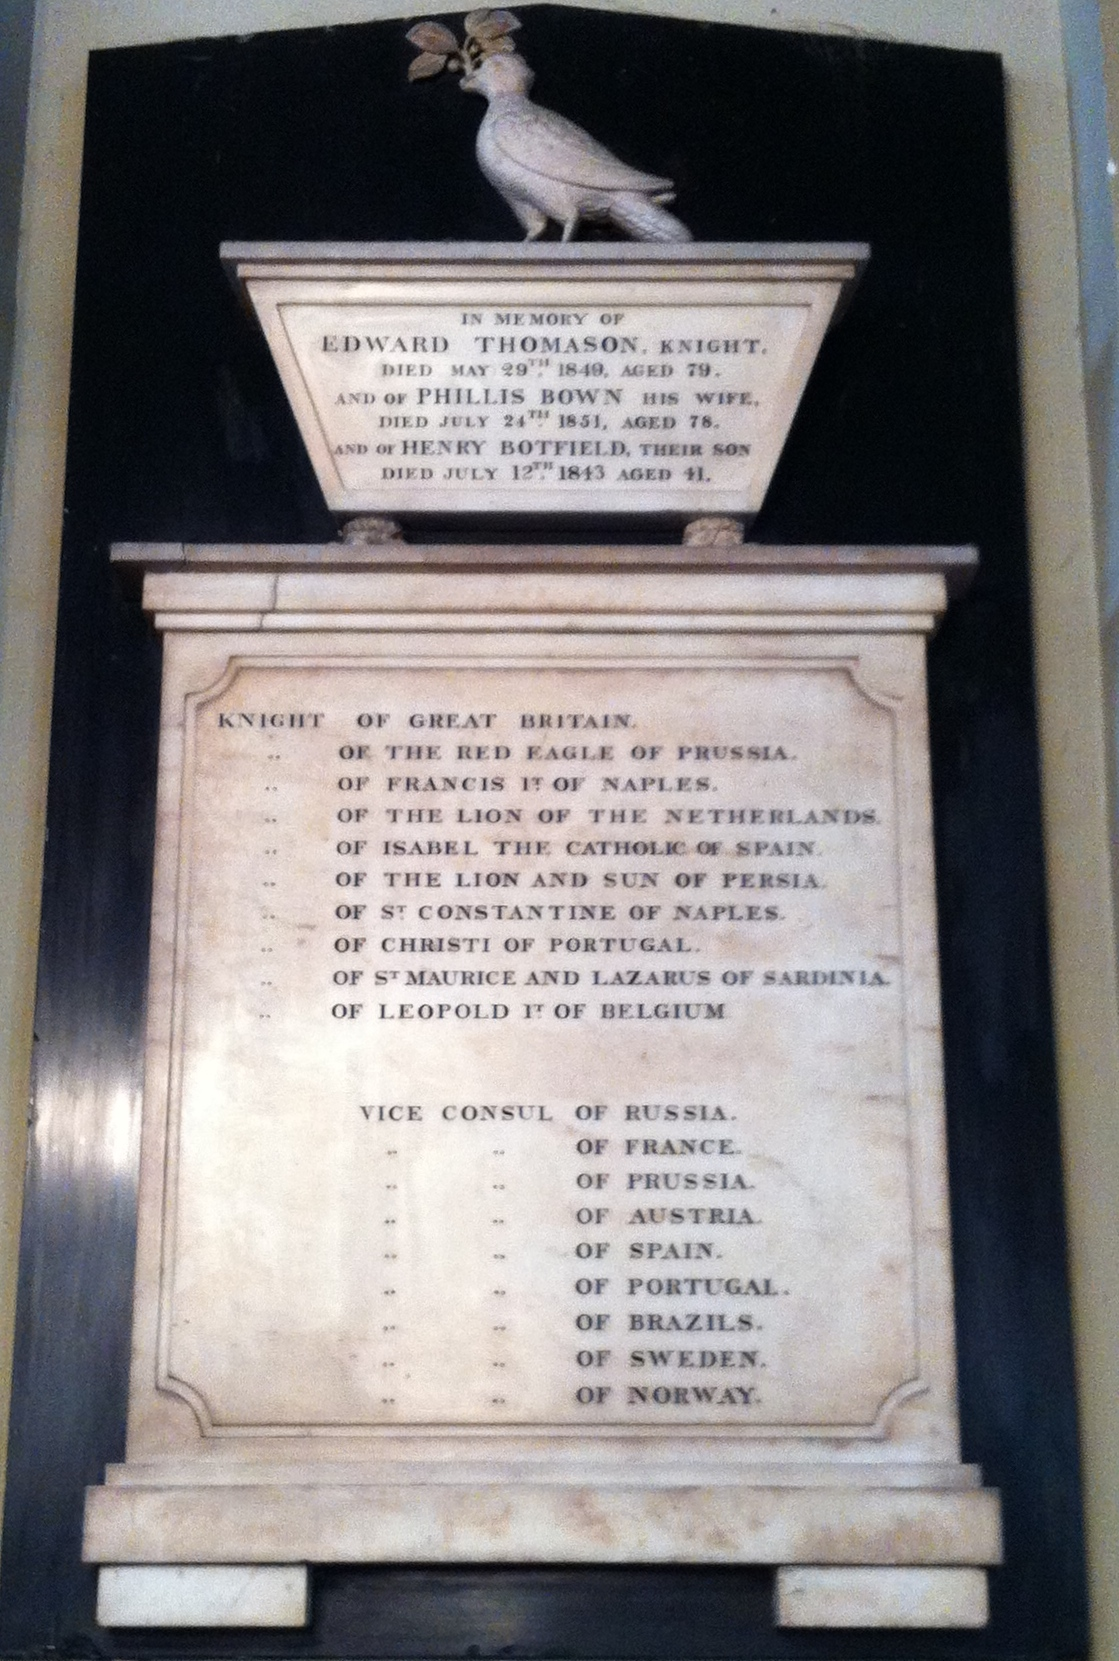 Memorial to Edward Thomason in [[St Philip's Cathedral, Birmingham